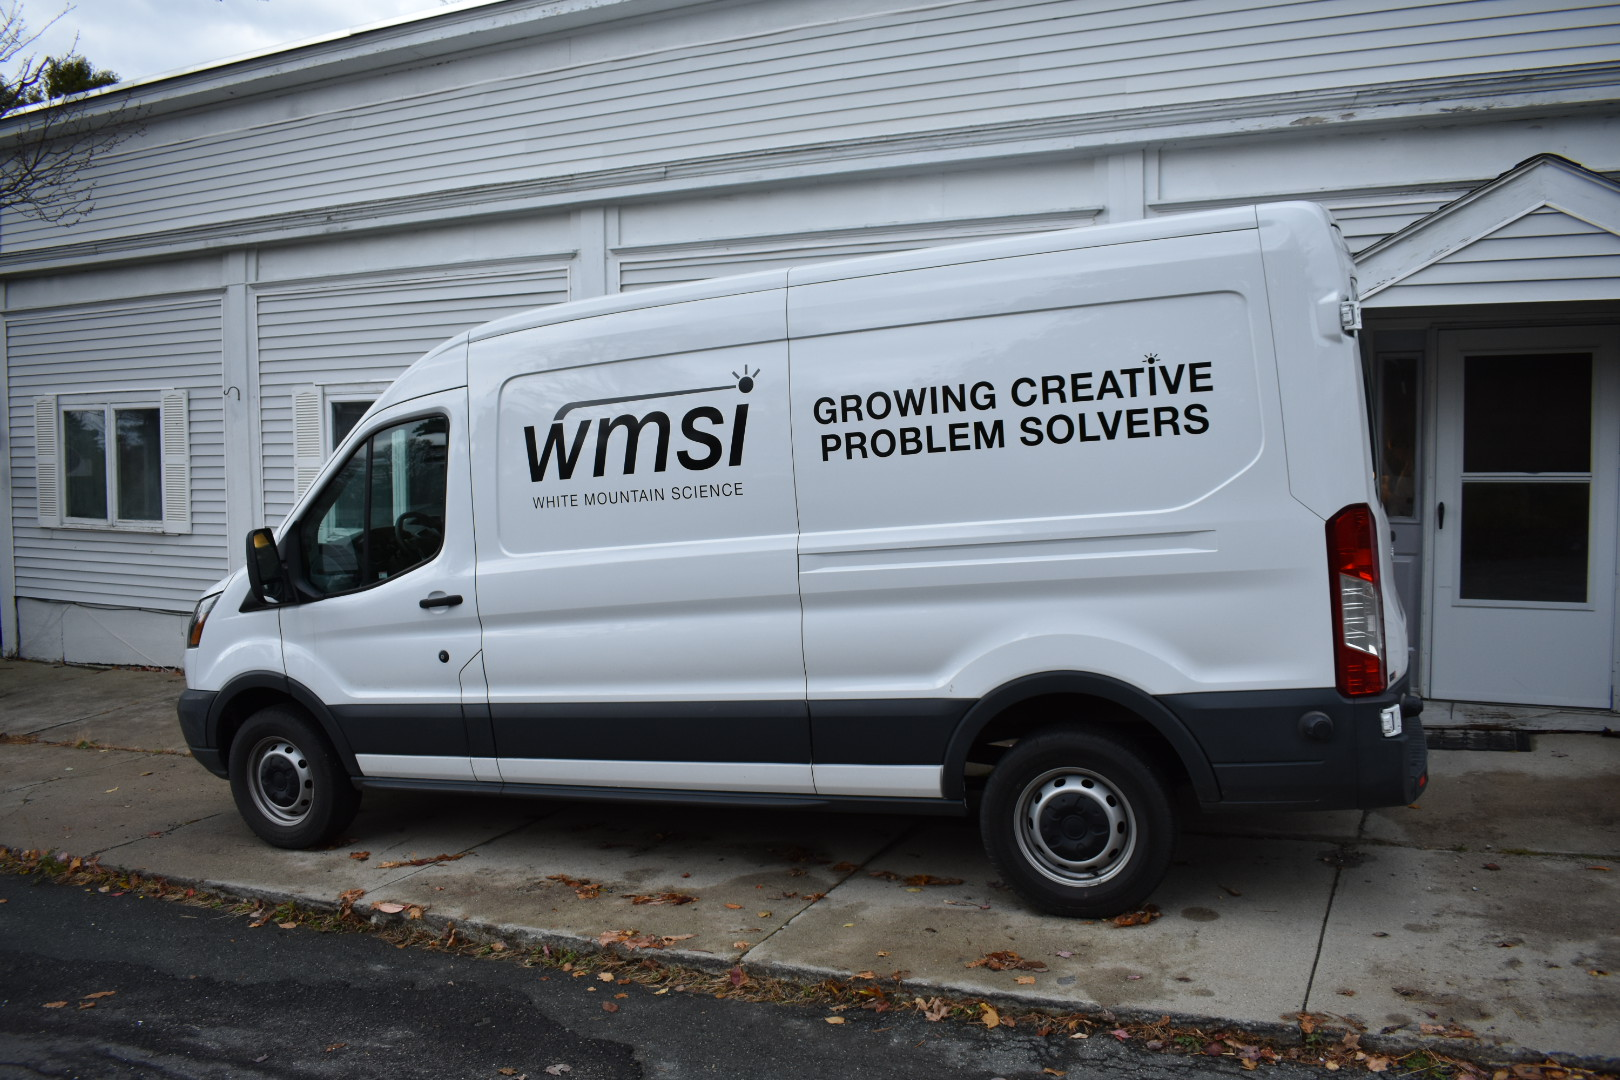 You can see our Mobile STEM Lab van anywhere in Northern New Hampshire!